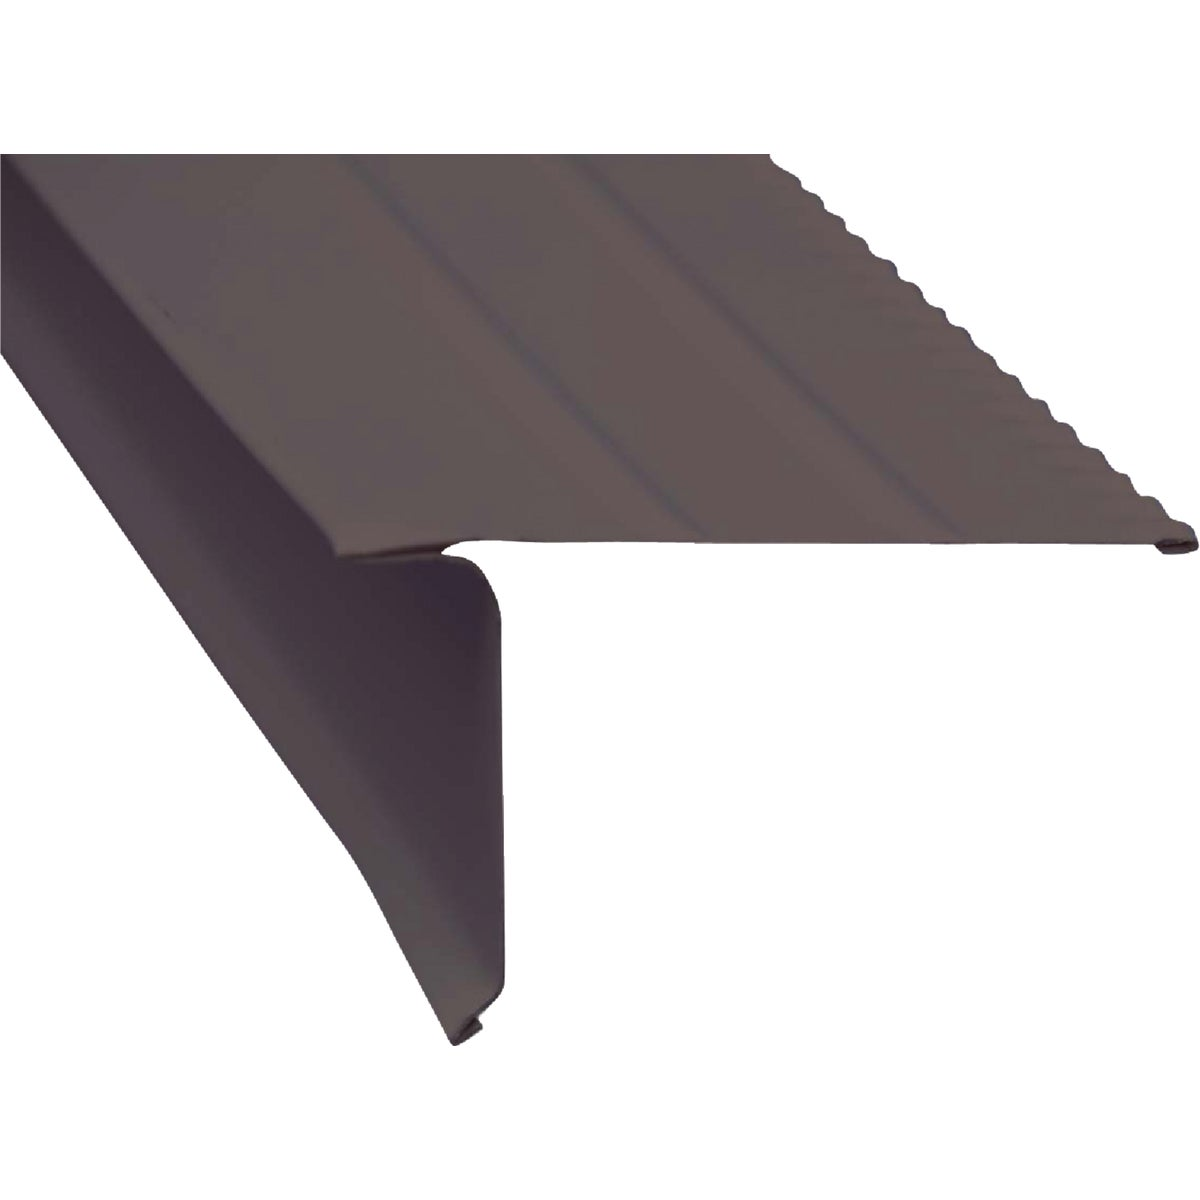 BROWN ALM ROOF DRIP EDGE - 5504119120 by Amerimax Home Prod